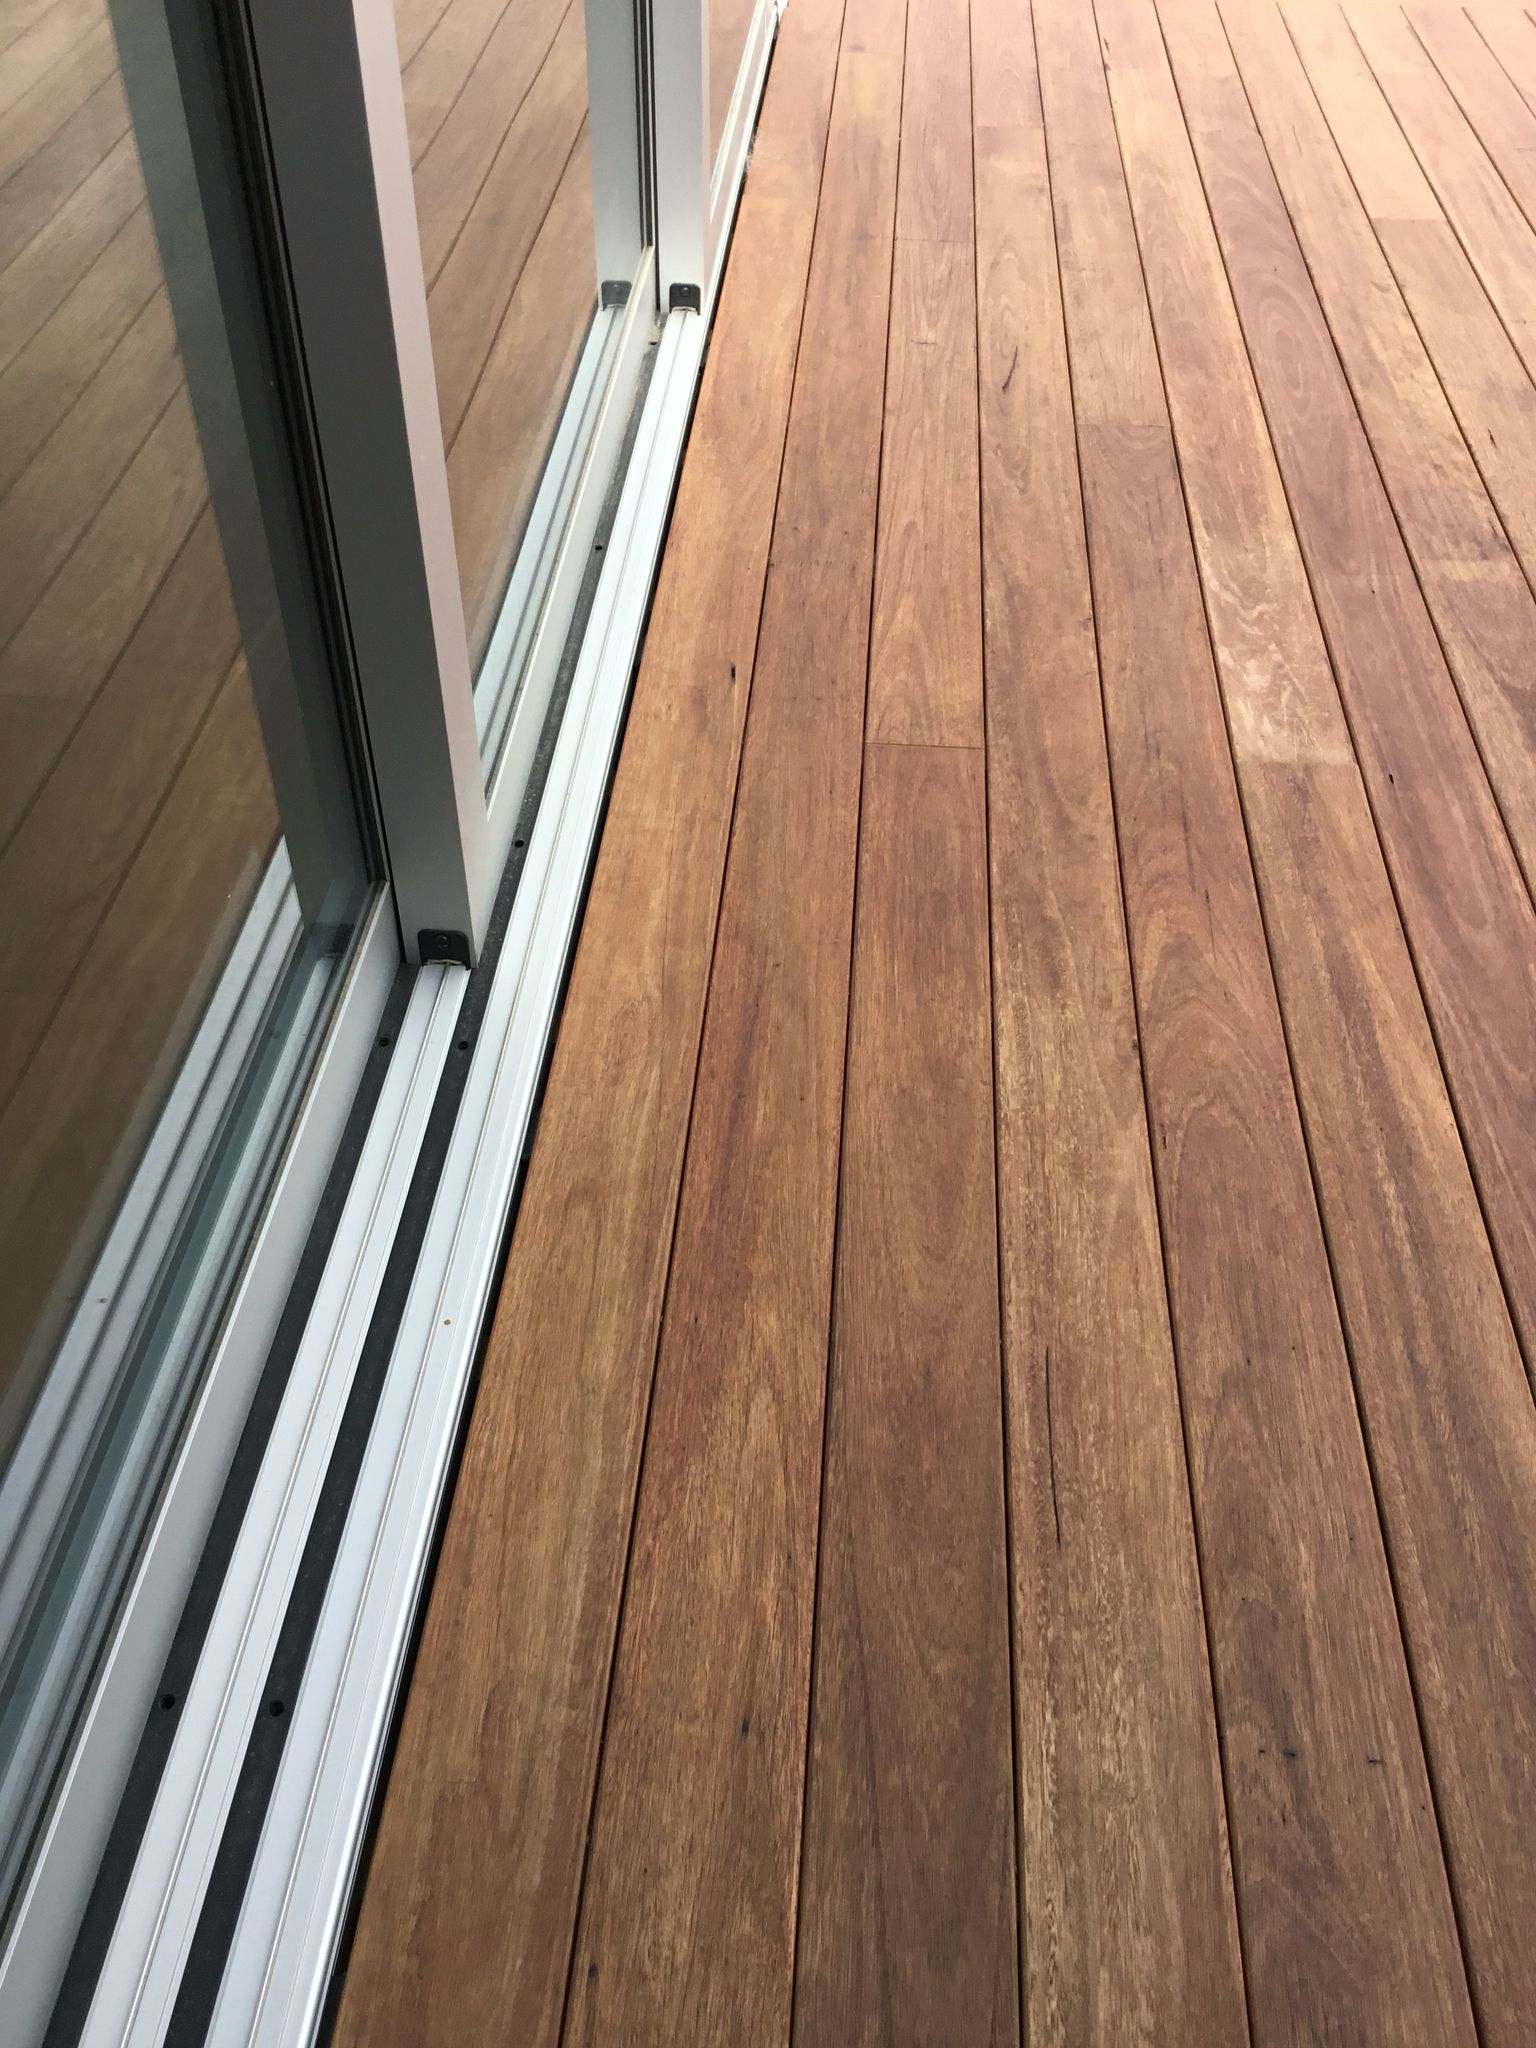 Shadowdeck Blackbutt Decking 130x19 Show How The Shadowdeck 12mm House2deck Spacer Look Next To The Joinery Timber Deck Courtyard Design Beach House Exterior